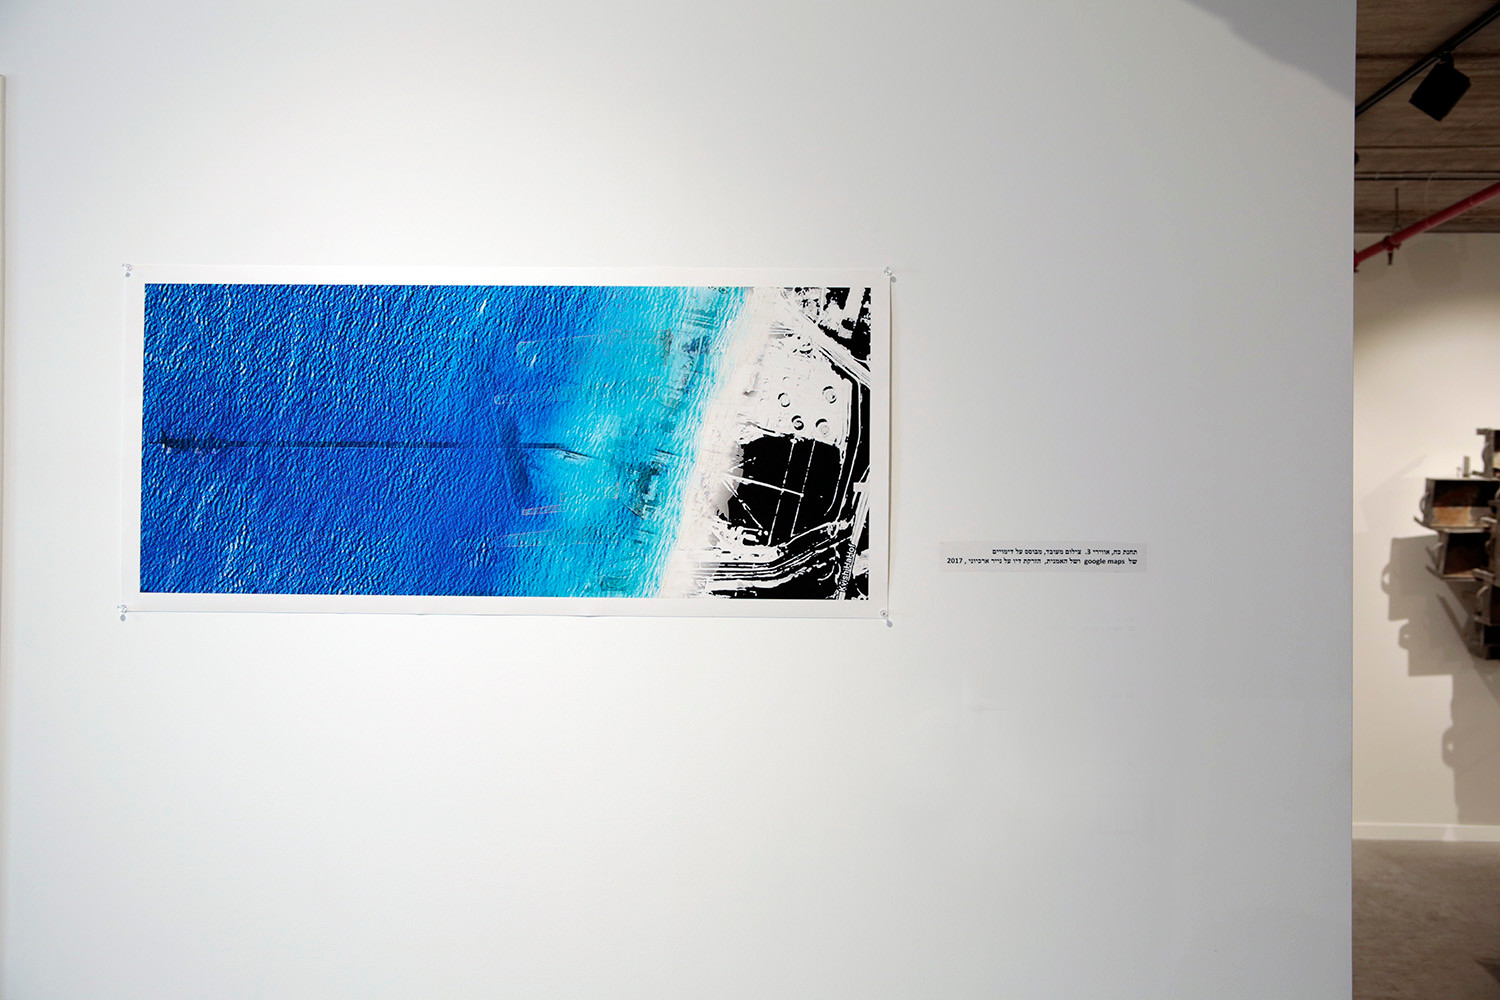 """Aerial, Coal power plant # 3 Instalation view - """"Work environment"""" exhibition"""